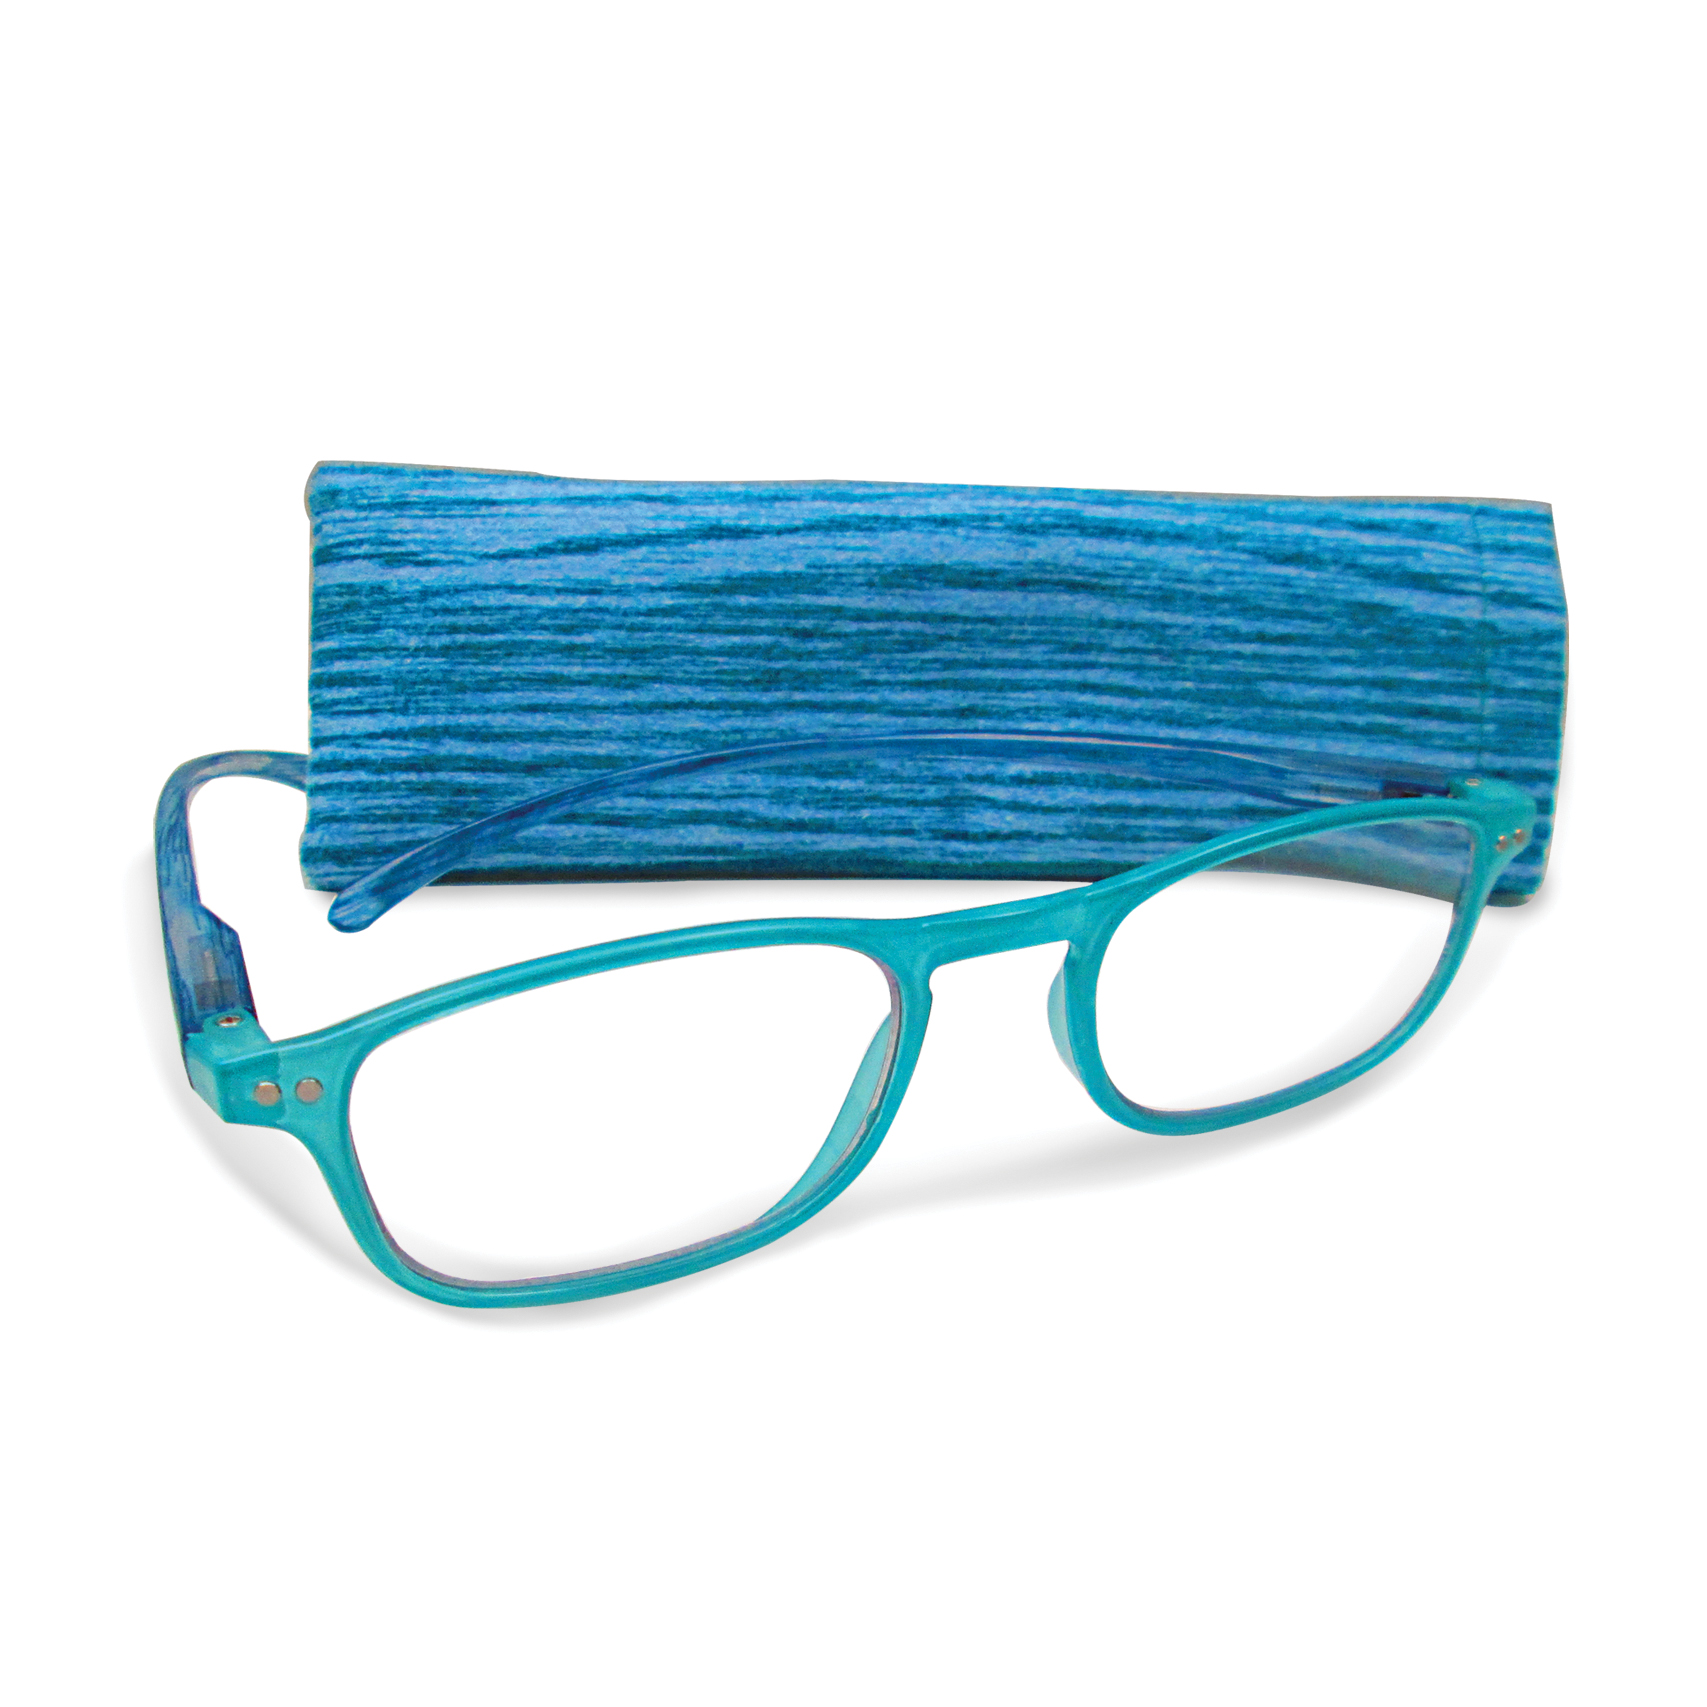 Blue +2.75 Magnification Reading Glasses